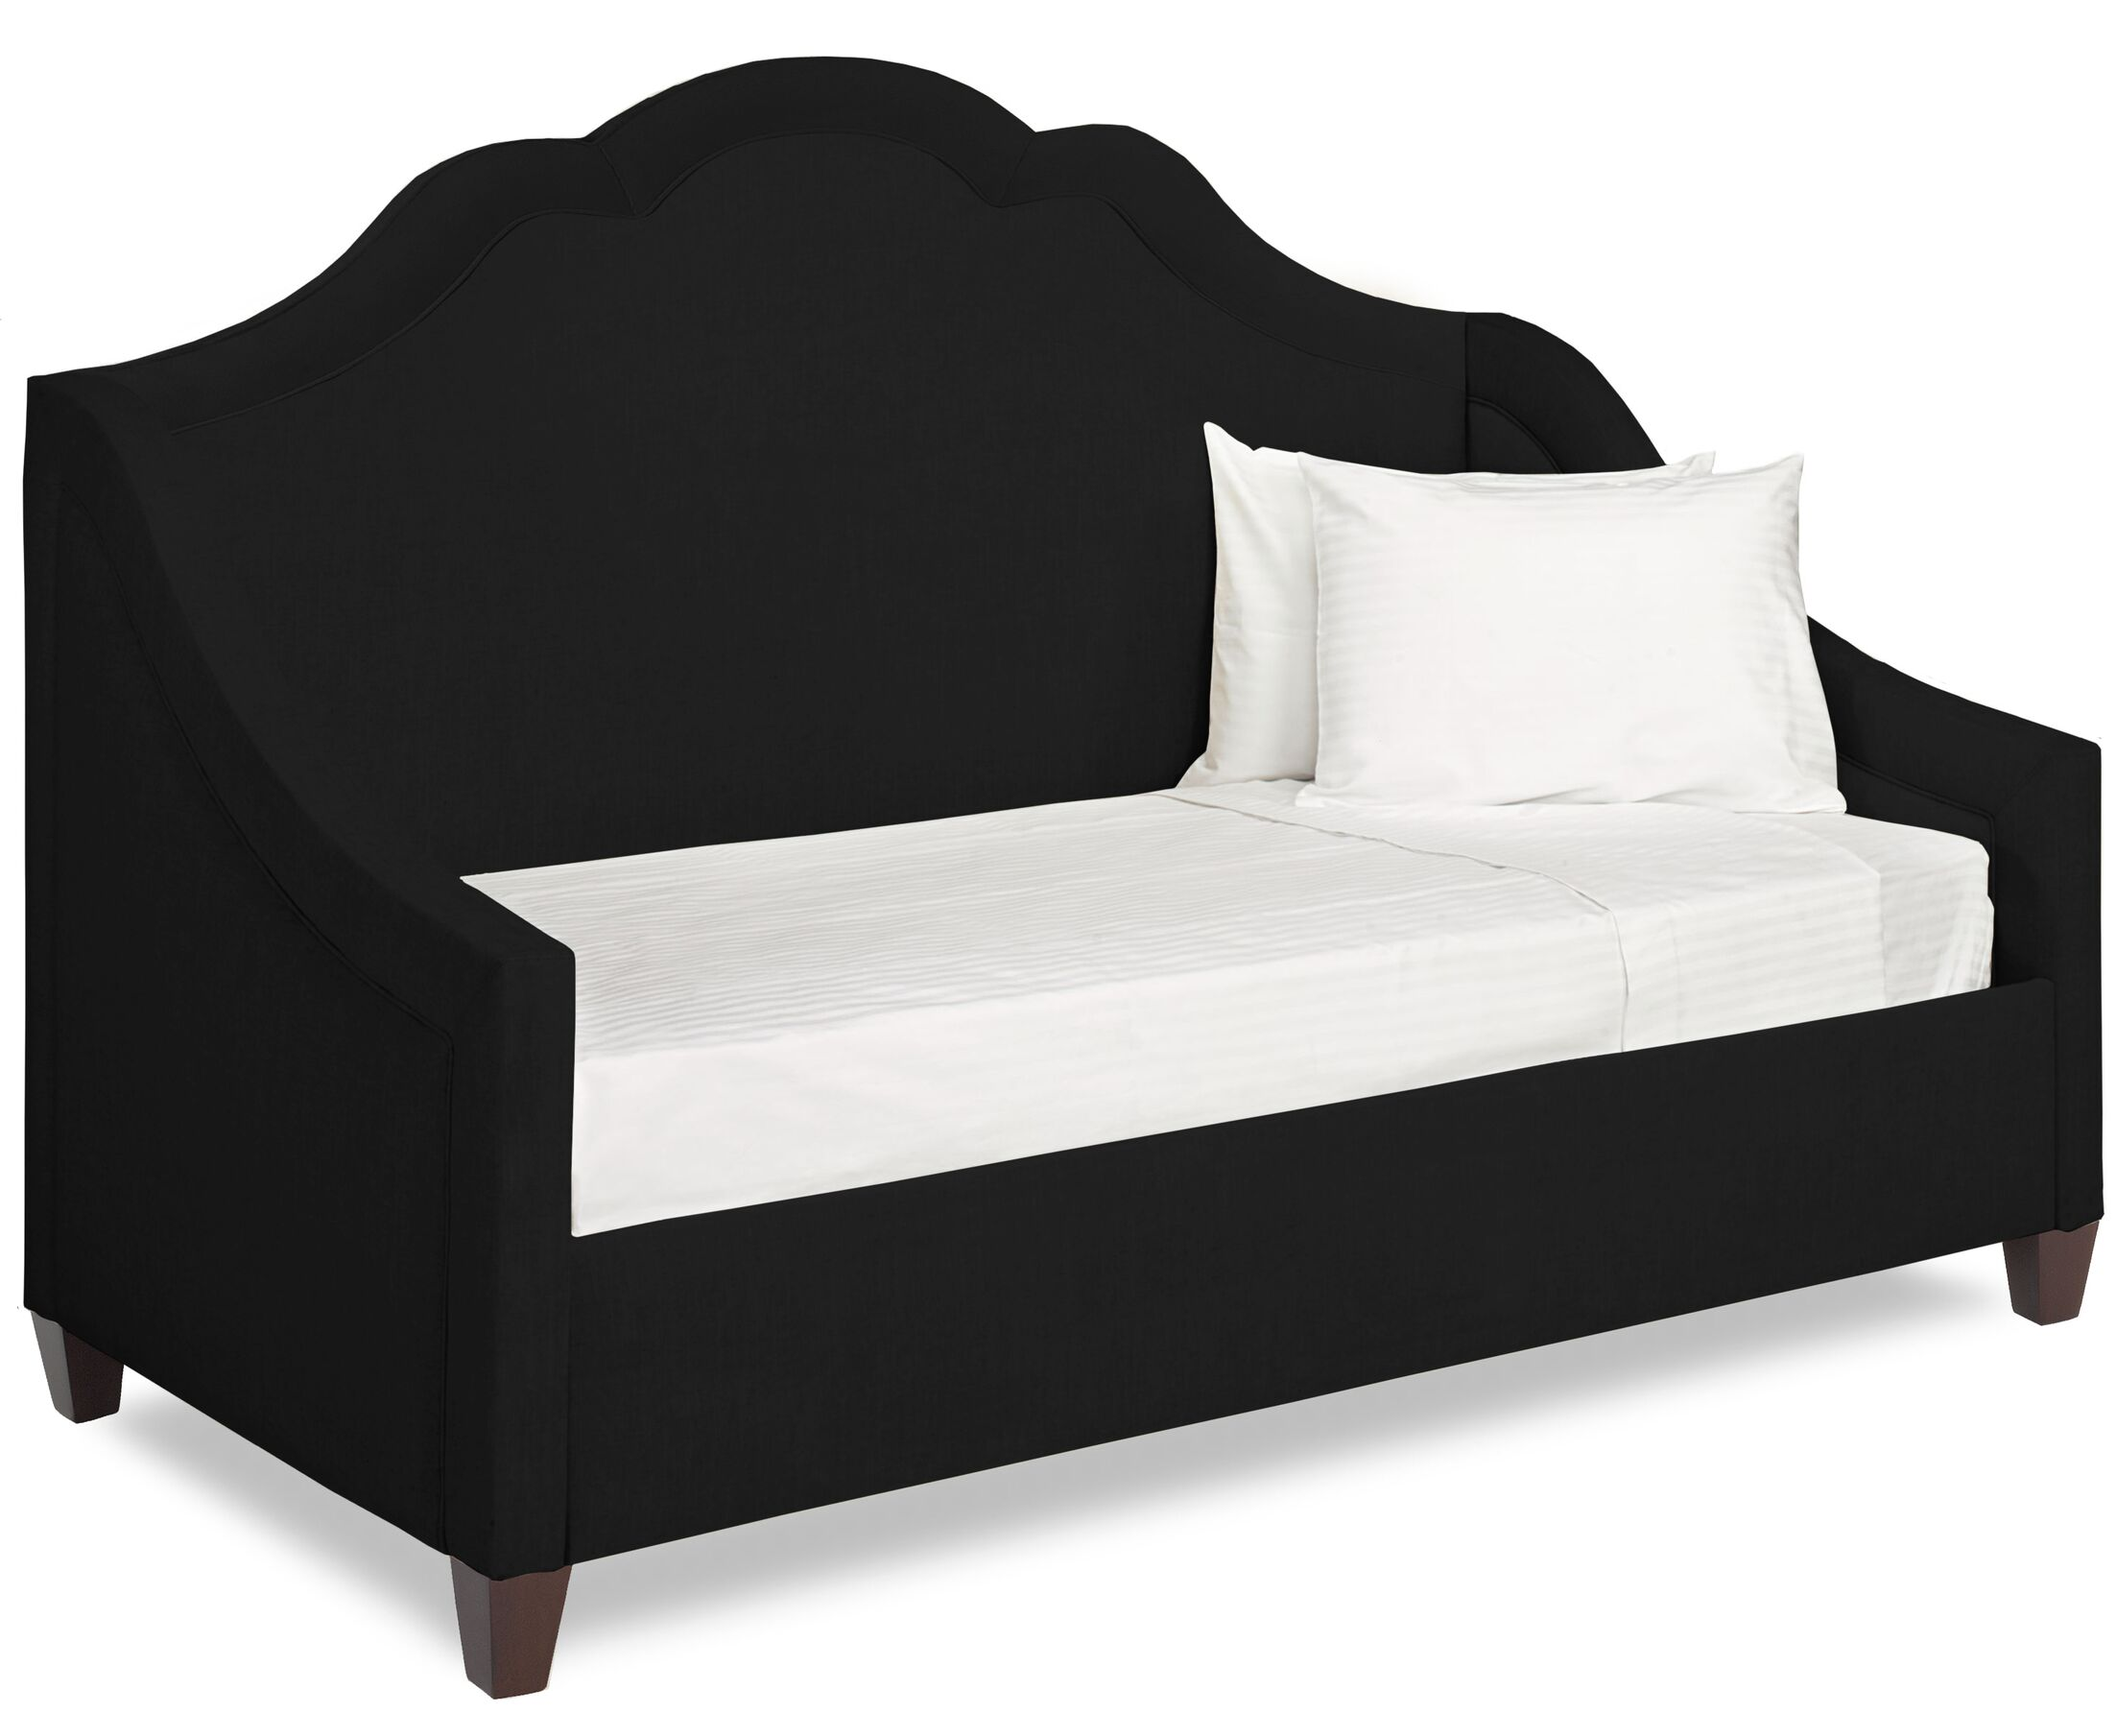 Dreamtime Daybed with Mattress Size: Twin, Color: Onyx